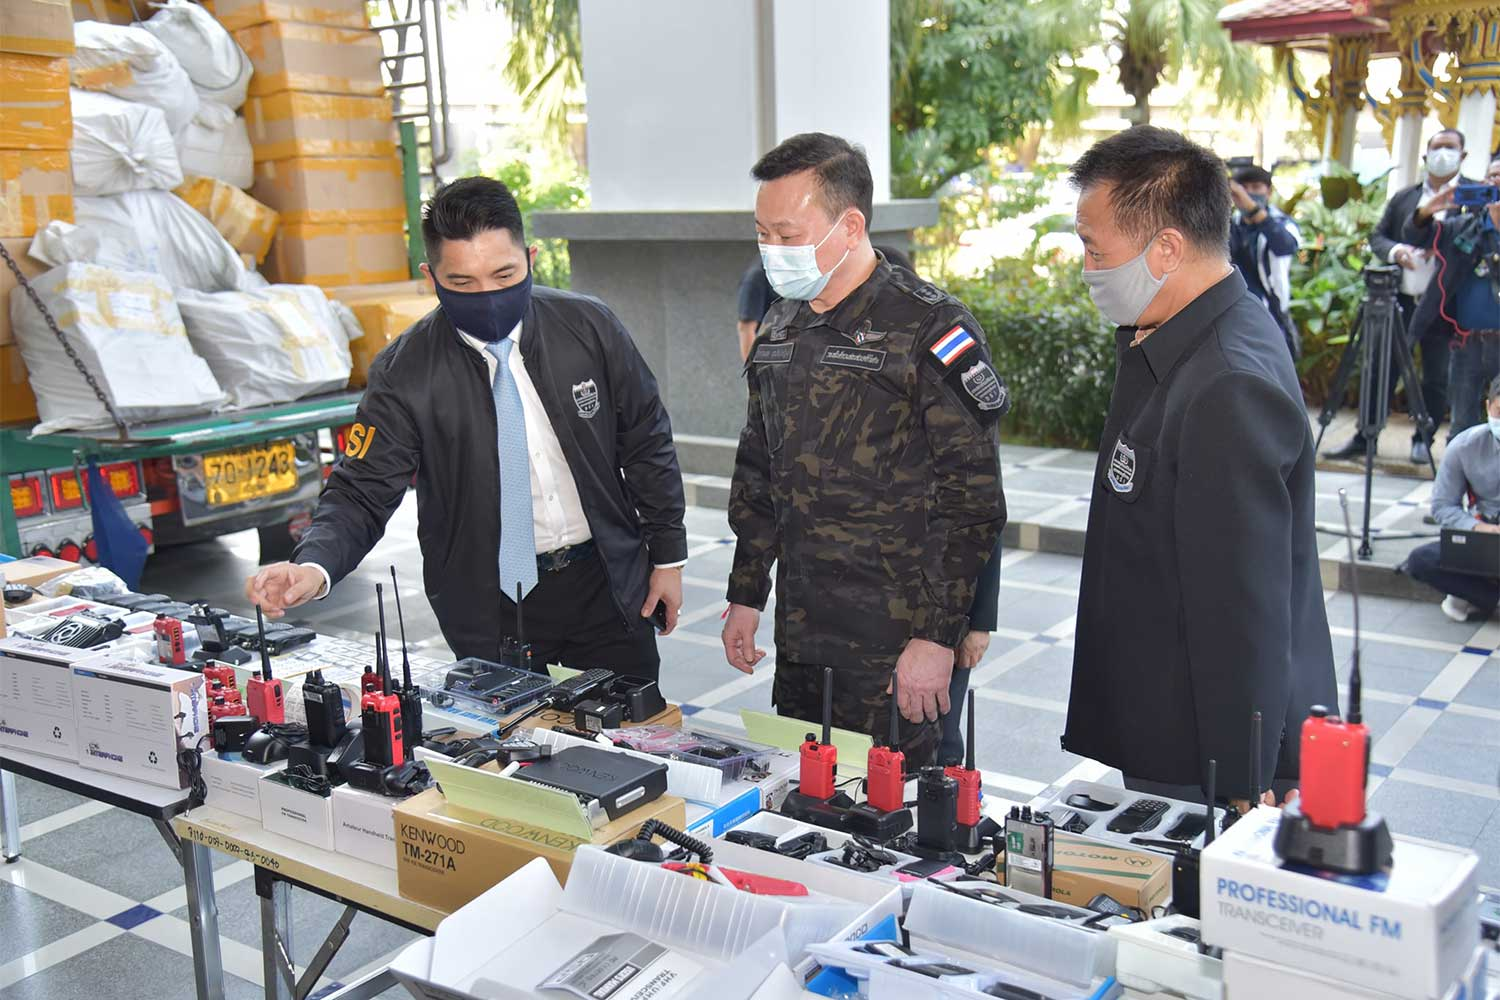 Fake two-way radios part of B50m haul